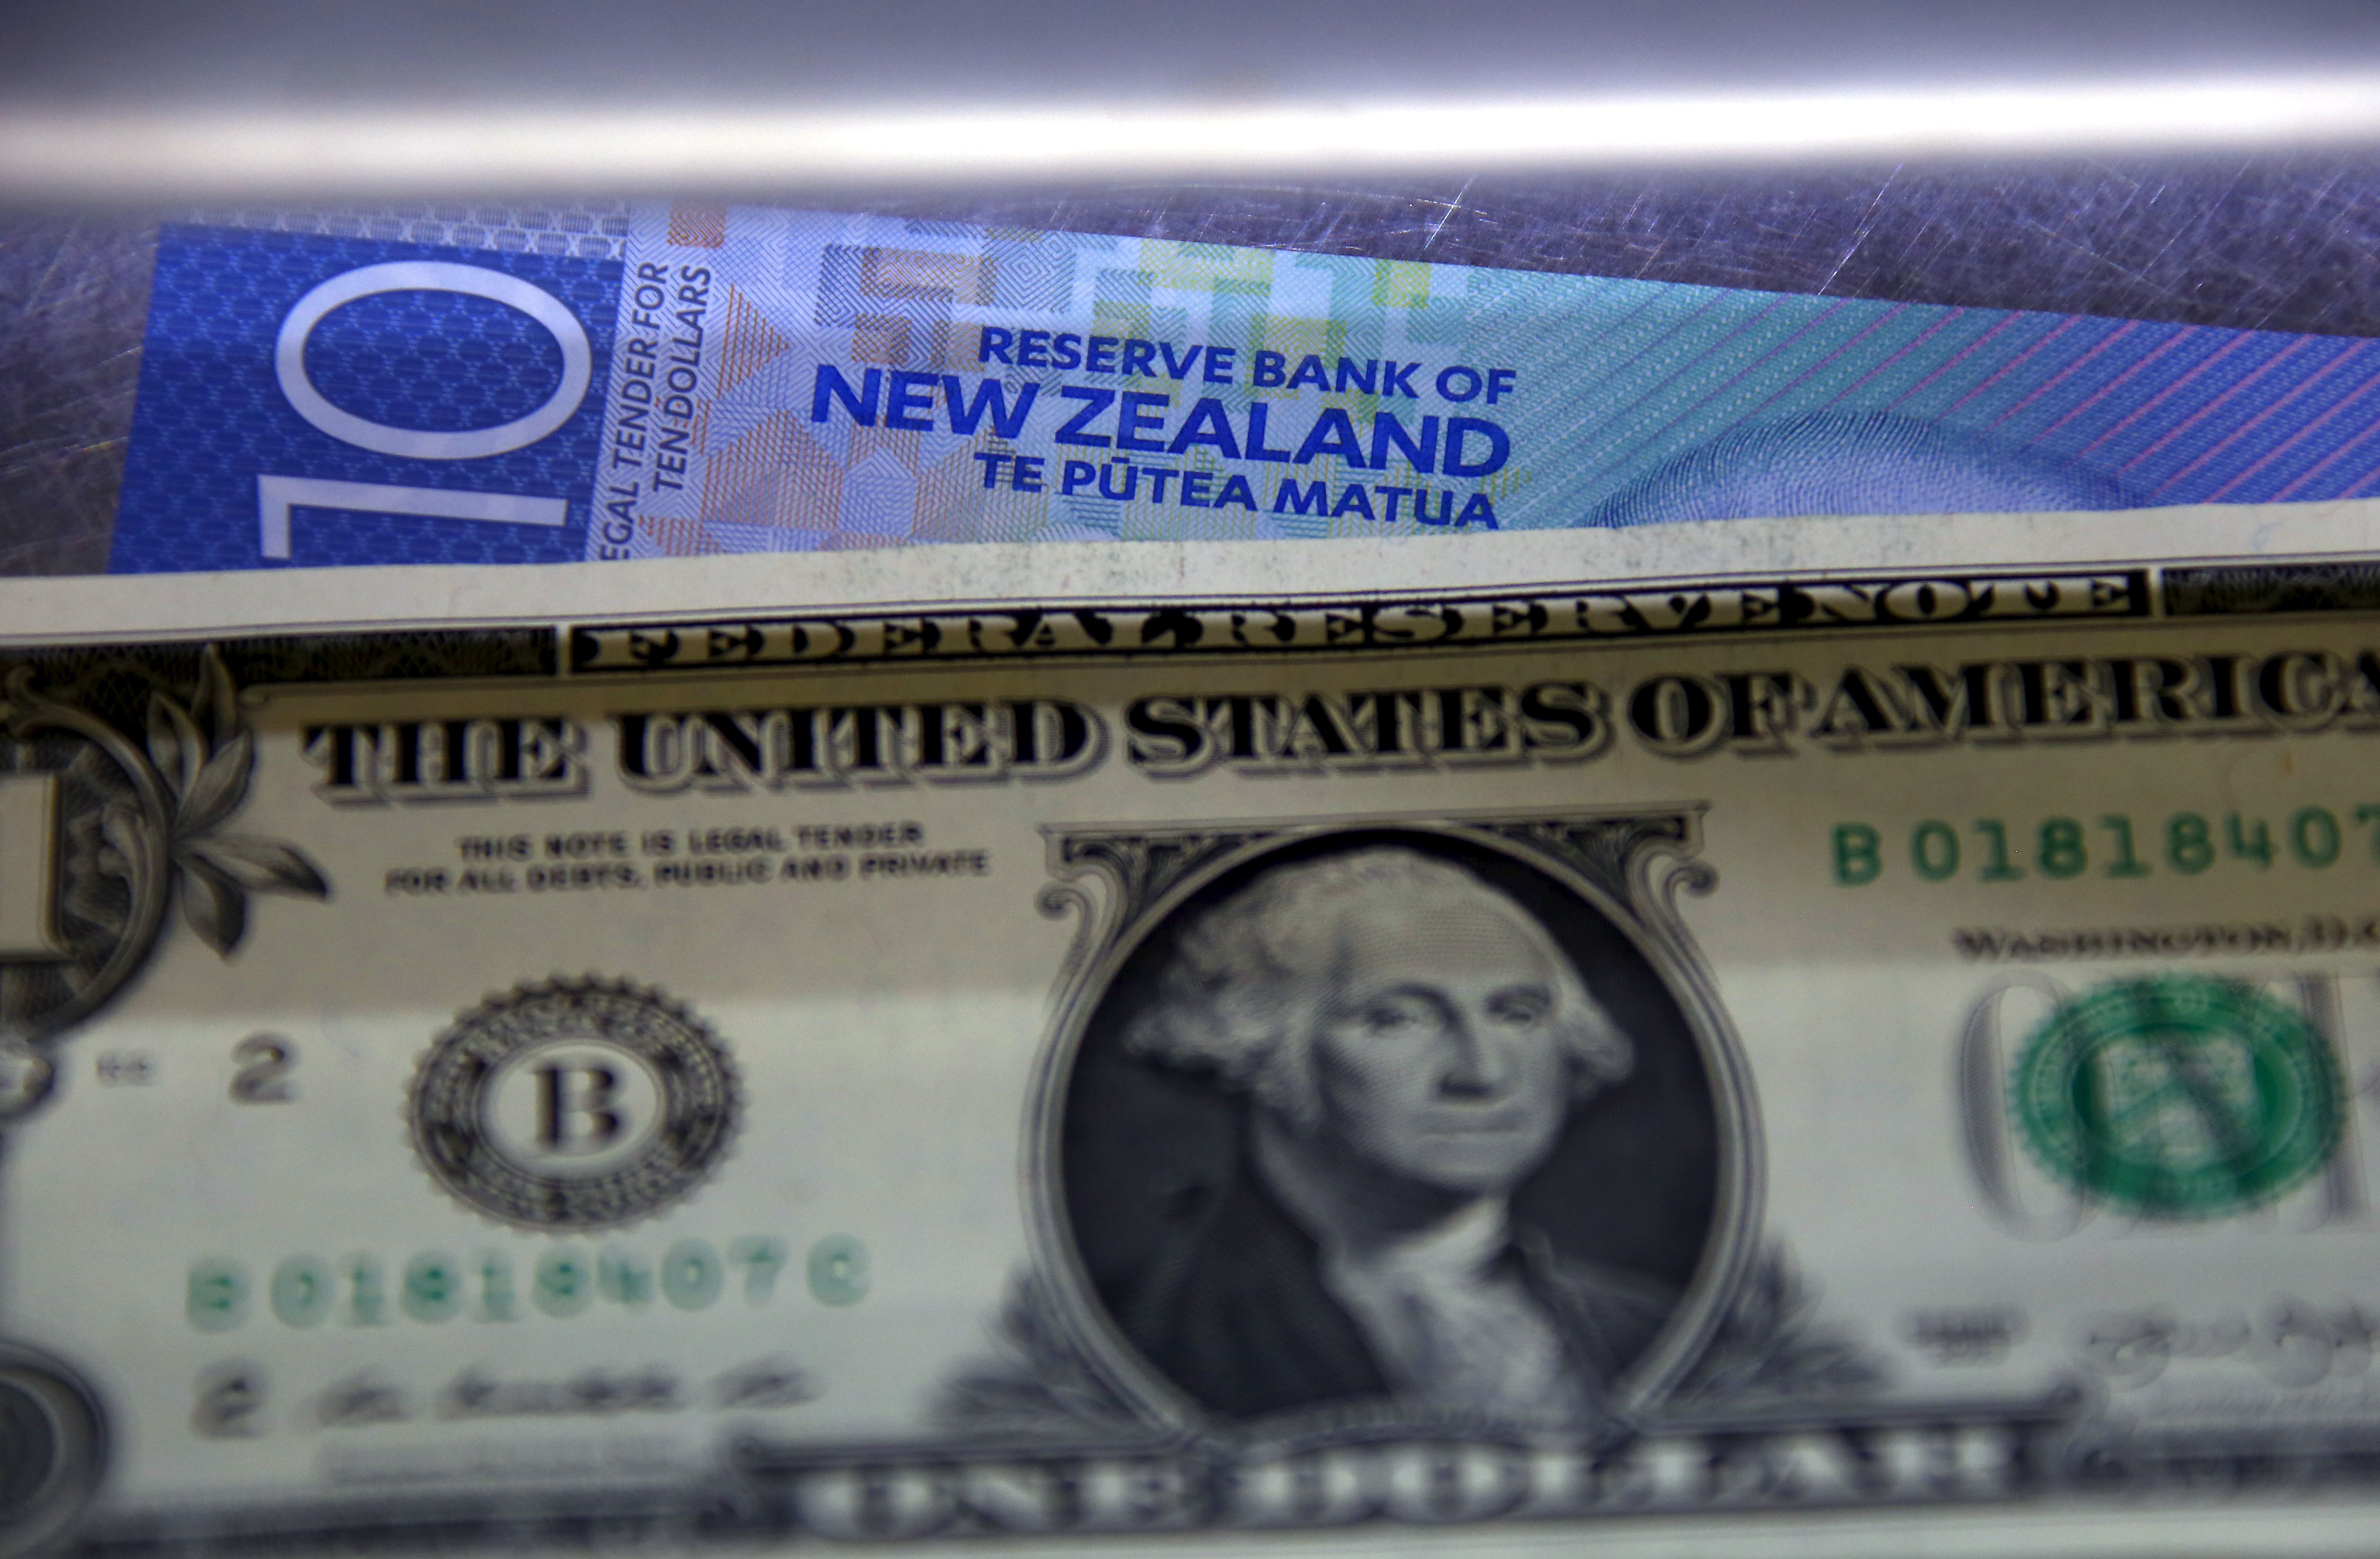 A New Zealand ten dollar note sits underneath a United States one dollar bill in the window of a currency exchange teller in Sydney, Australia, March 10, 2016. REUTERS/David Gray